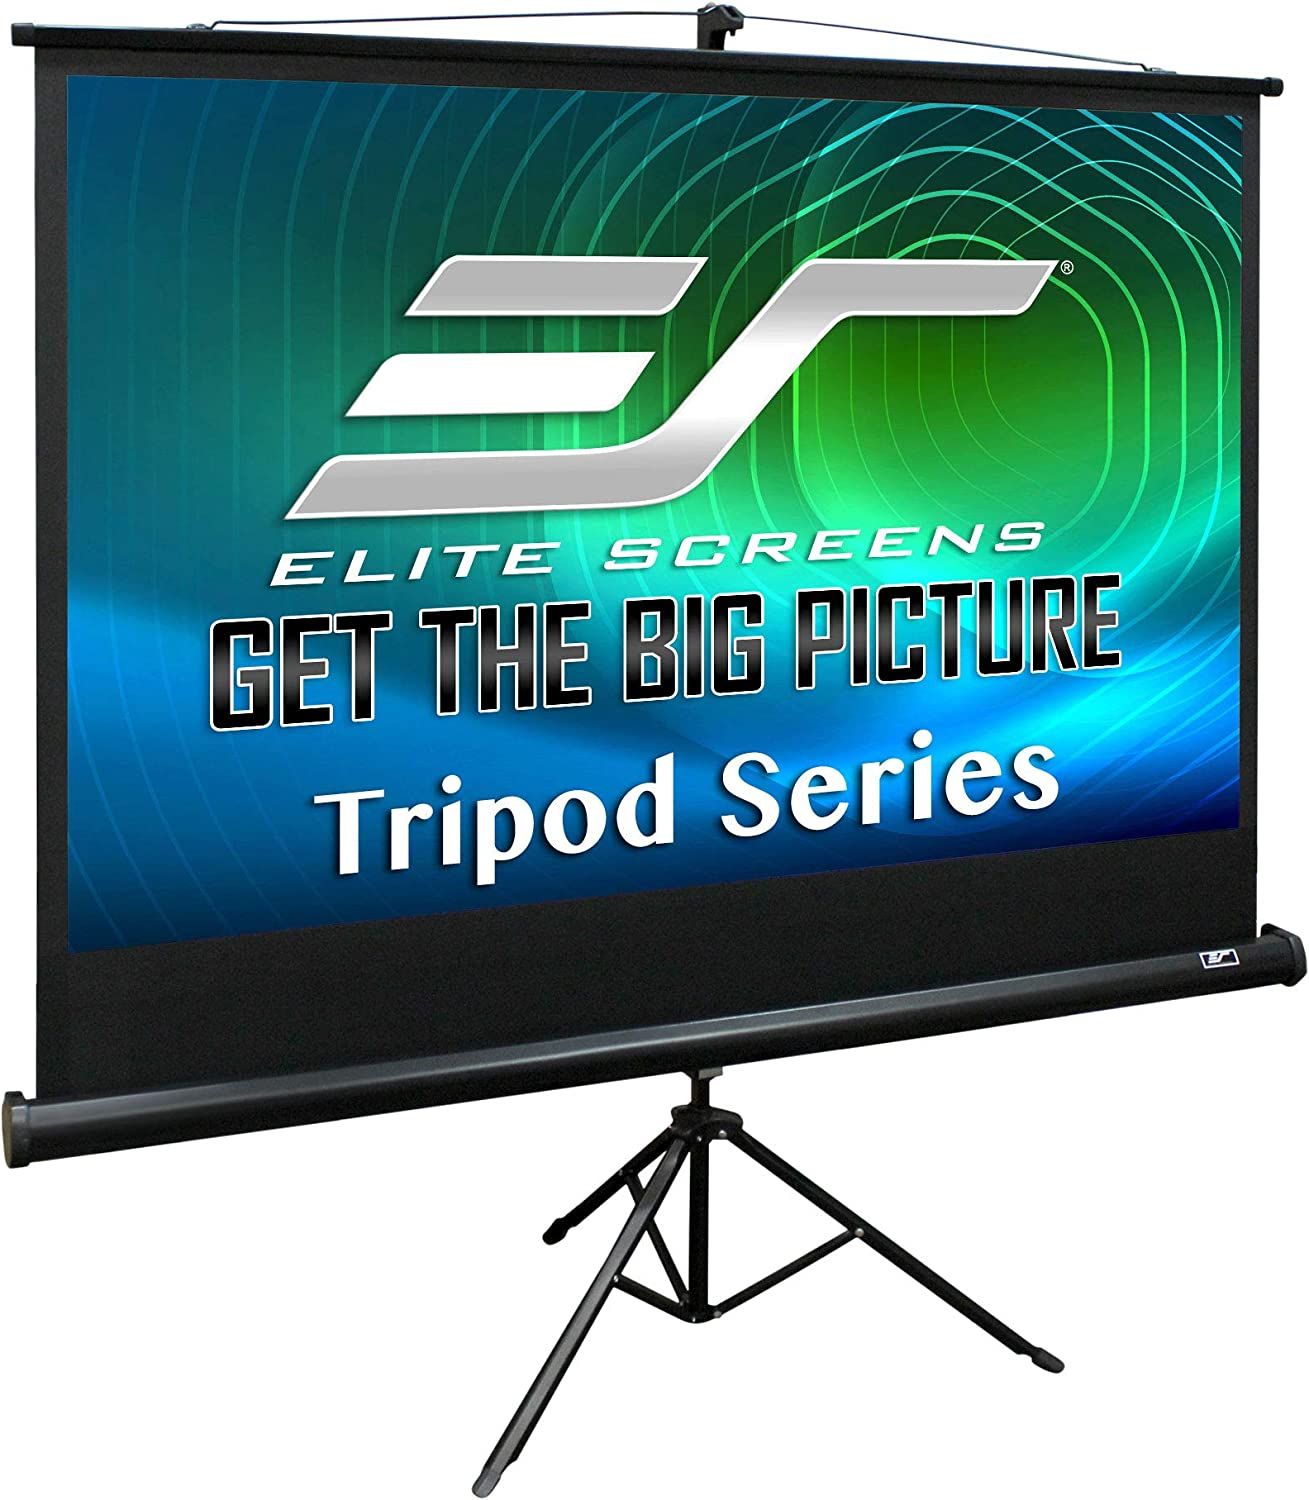 Elite Screens Tripod Series 100 Inch 4 3 Adjustable Multi Aspect Ratio Portable Indoor Outdoor Projector Screen 8k 4k Ultra Hd 3d Ready 2 Year Warranty T100uwv1 Black Home Audio Theater